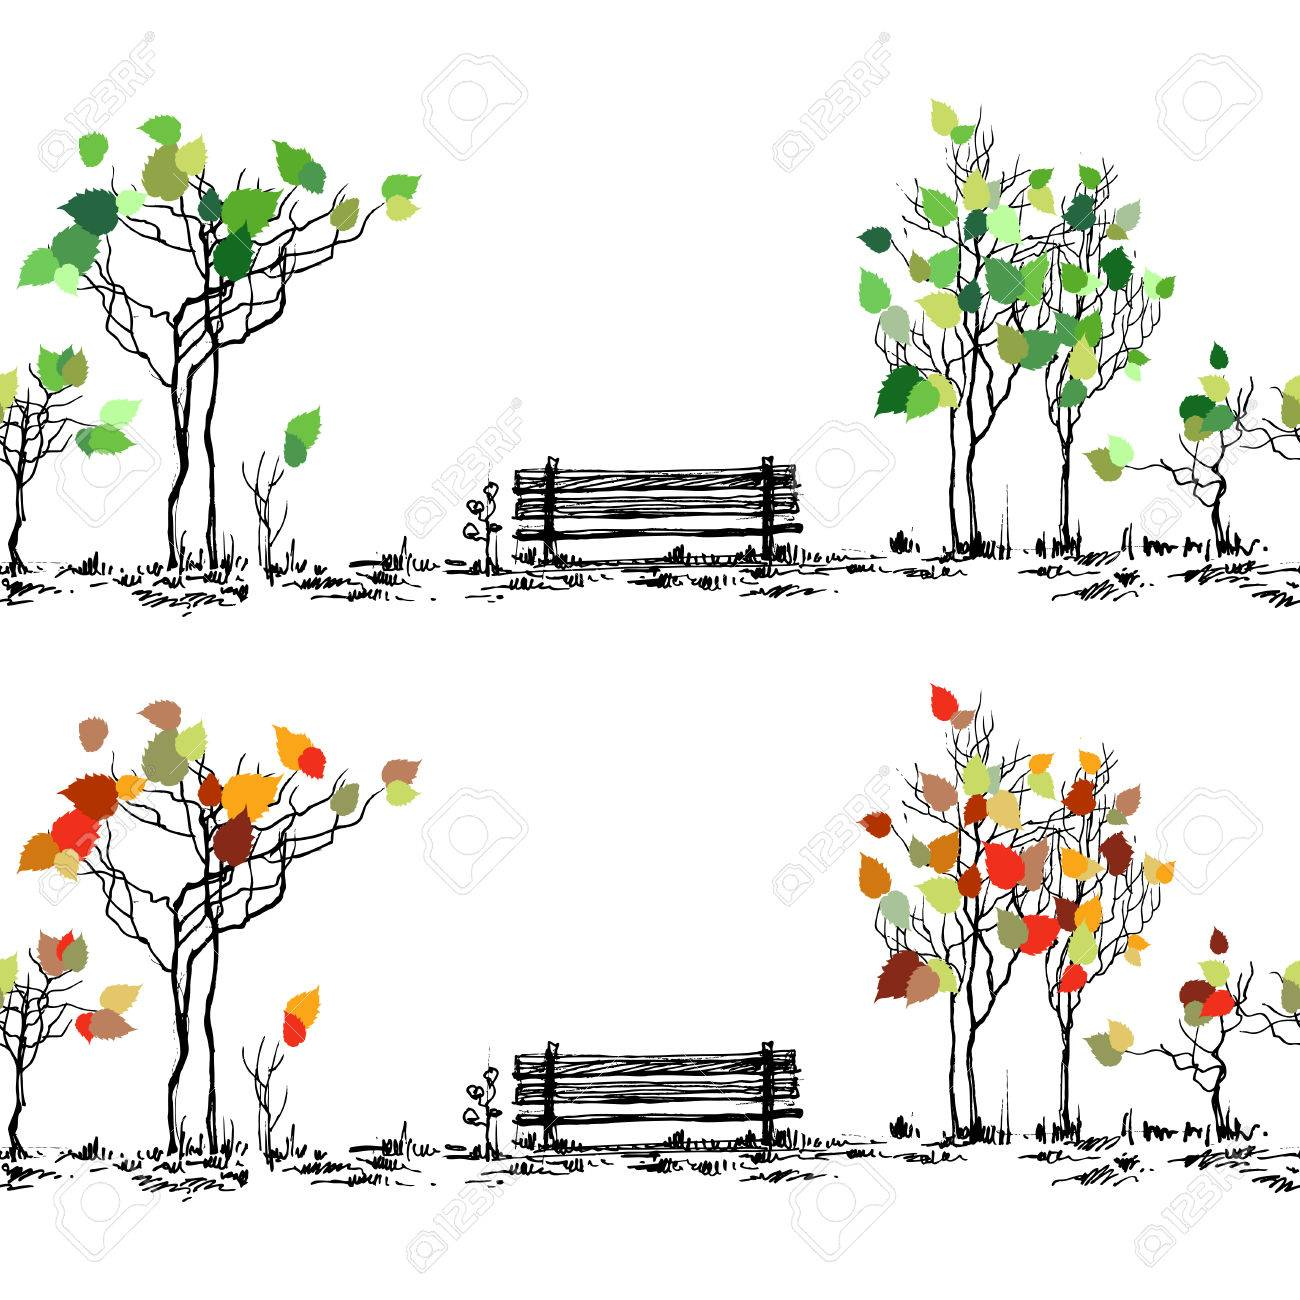 Park sketch. Bench and trees in different seasons - 58689772